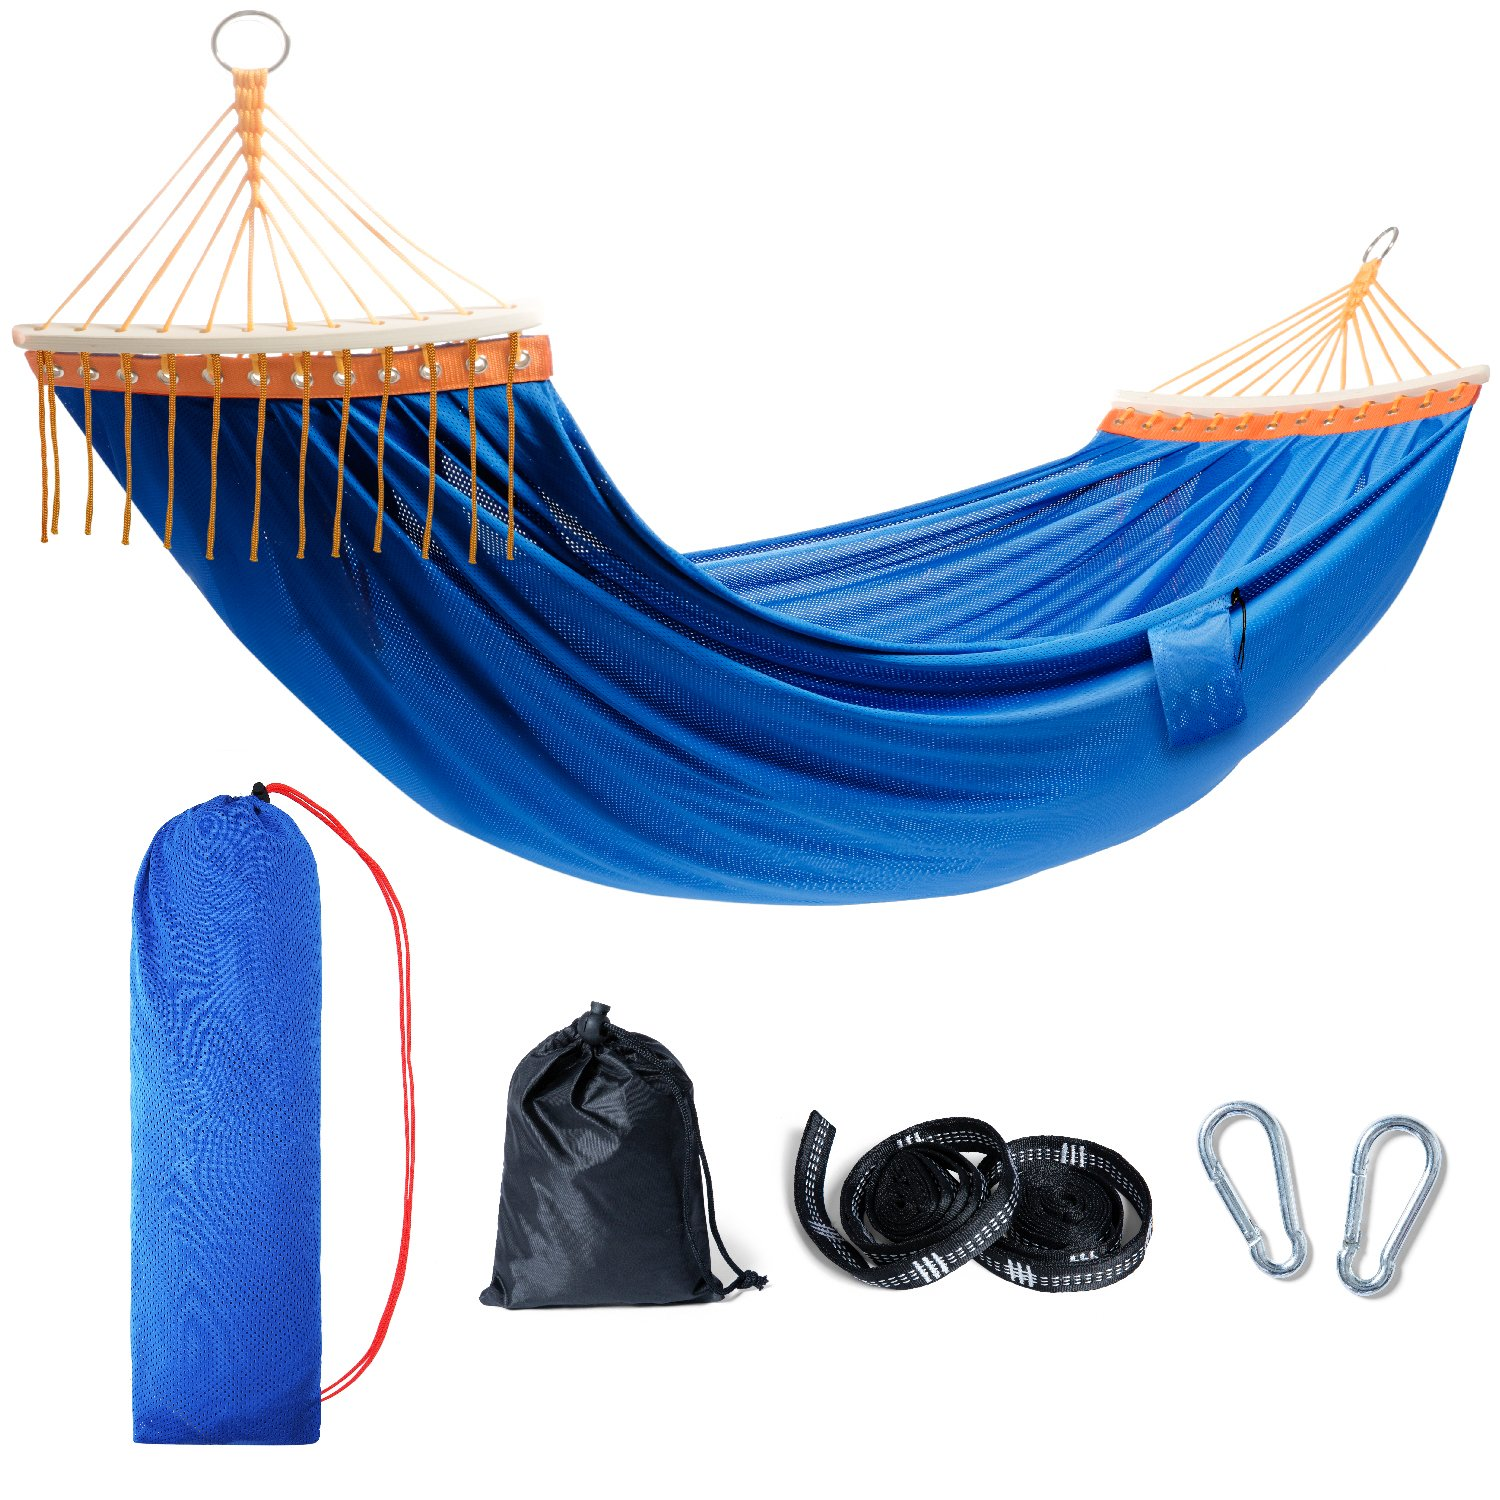 450lbs Capacity TOURIT Lightweight Portable Hammock Double Camping Hammock with Tree Straps for Outdoors Patio Yard Backpacking Travel Camping Beach